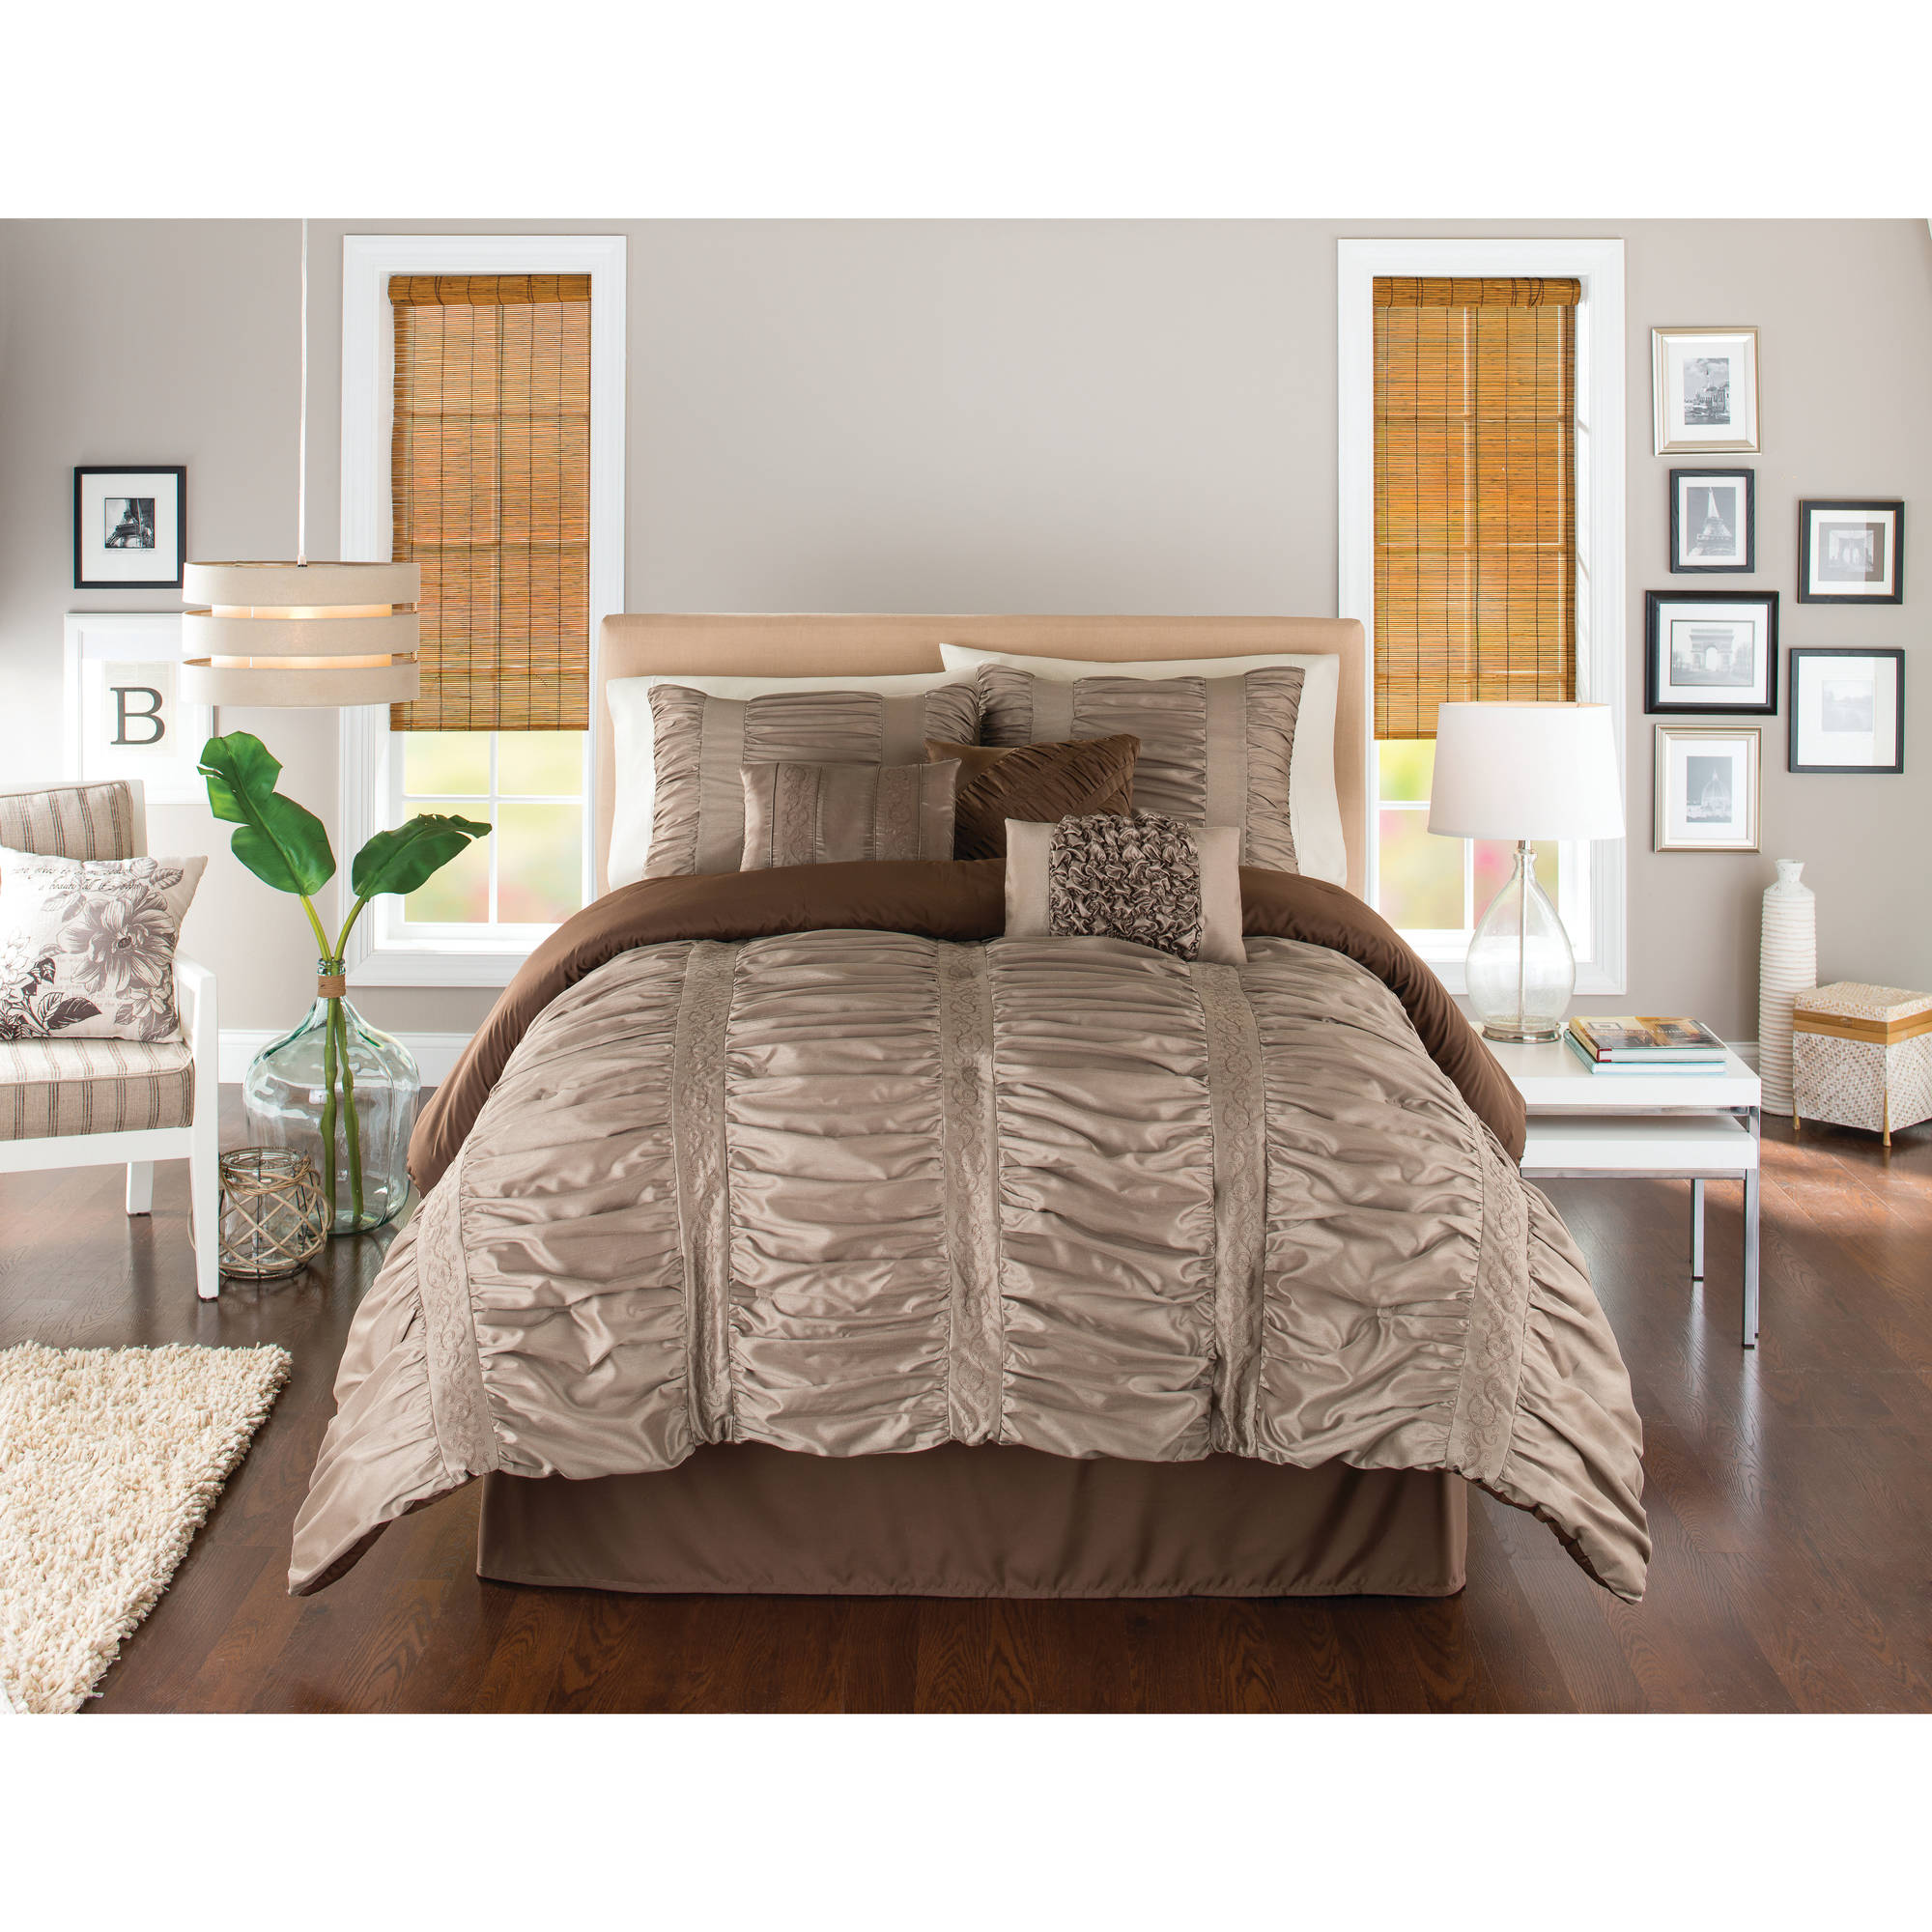 Comforter sets full full bedroom sets for cheap the best for Cheap full bedroom sets for sale